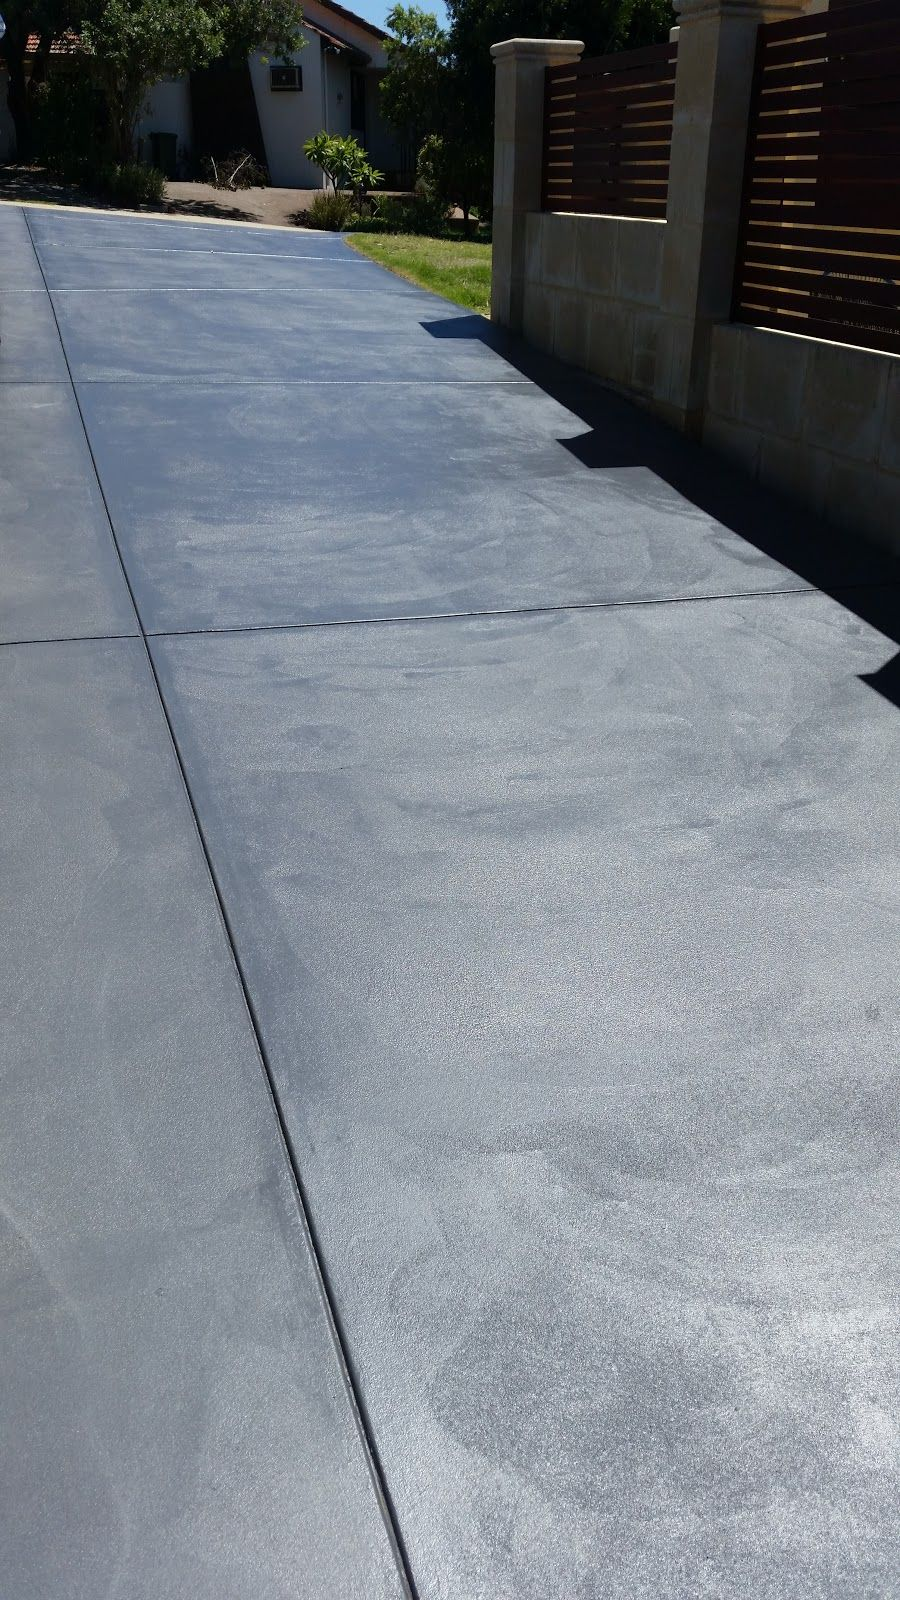 How To Apply Concrete Sealer To Driveway   arxiusarquitectura